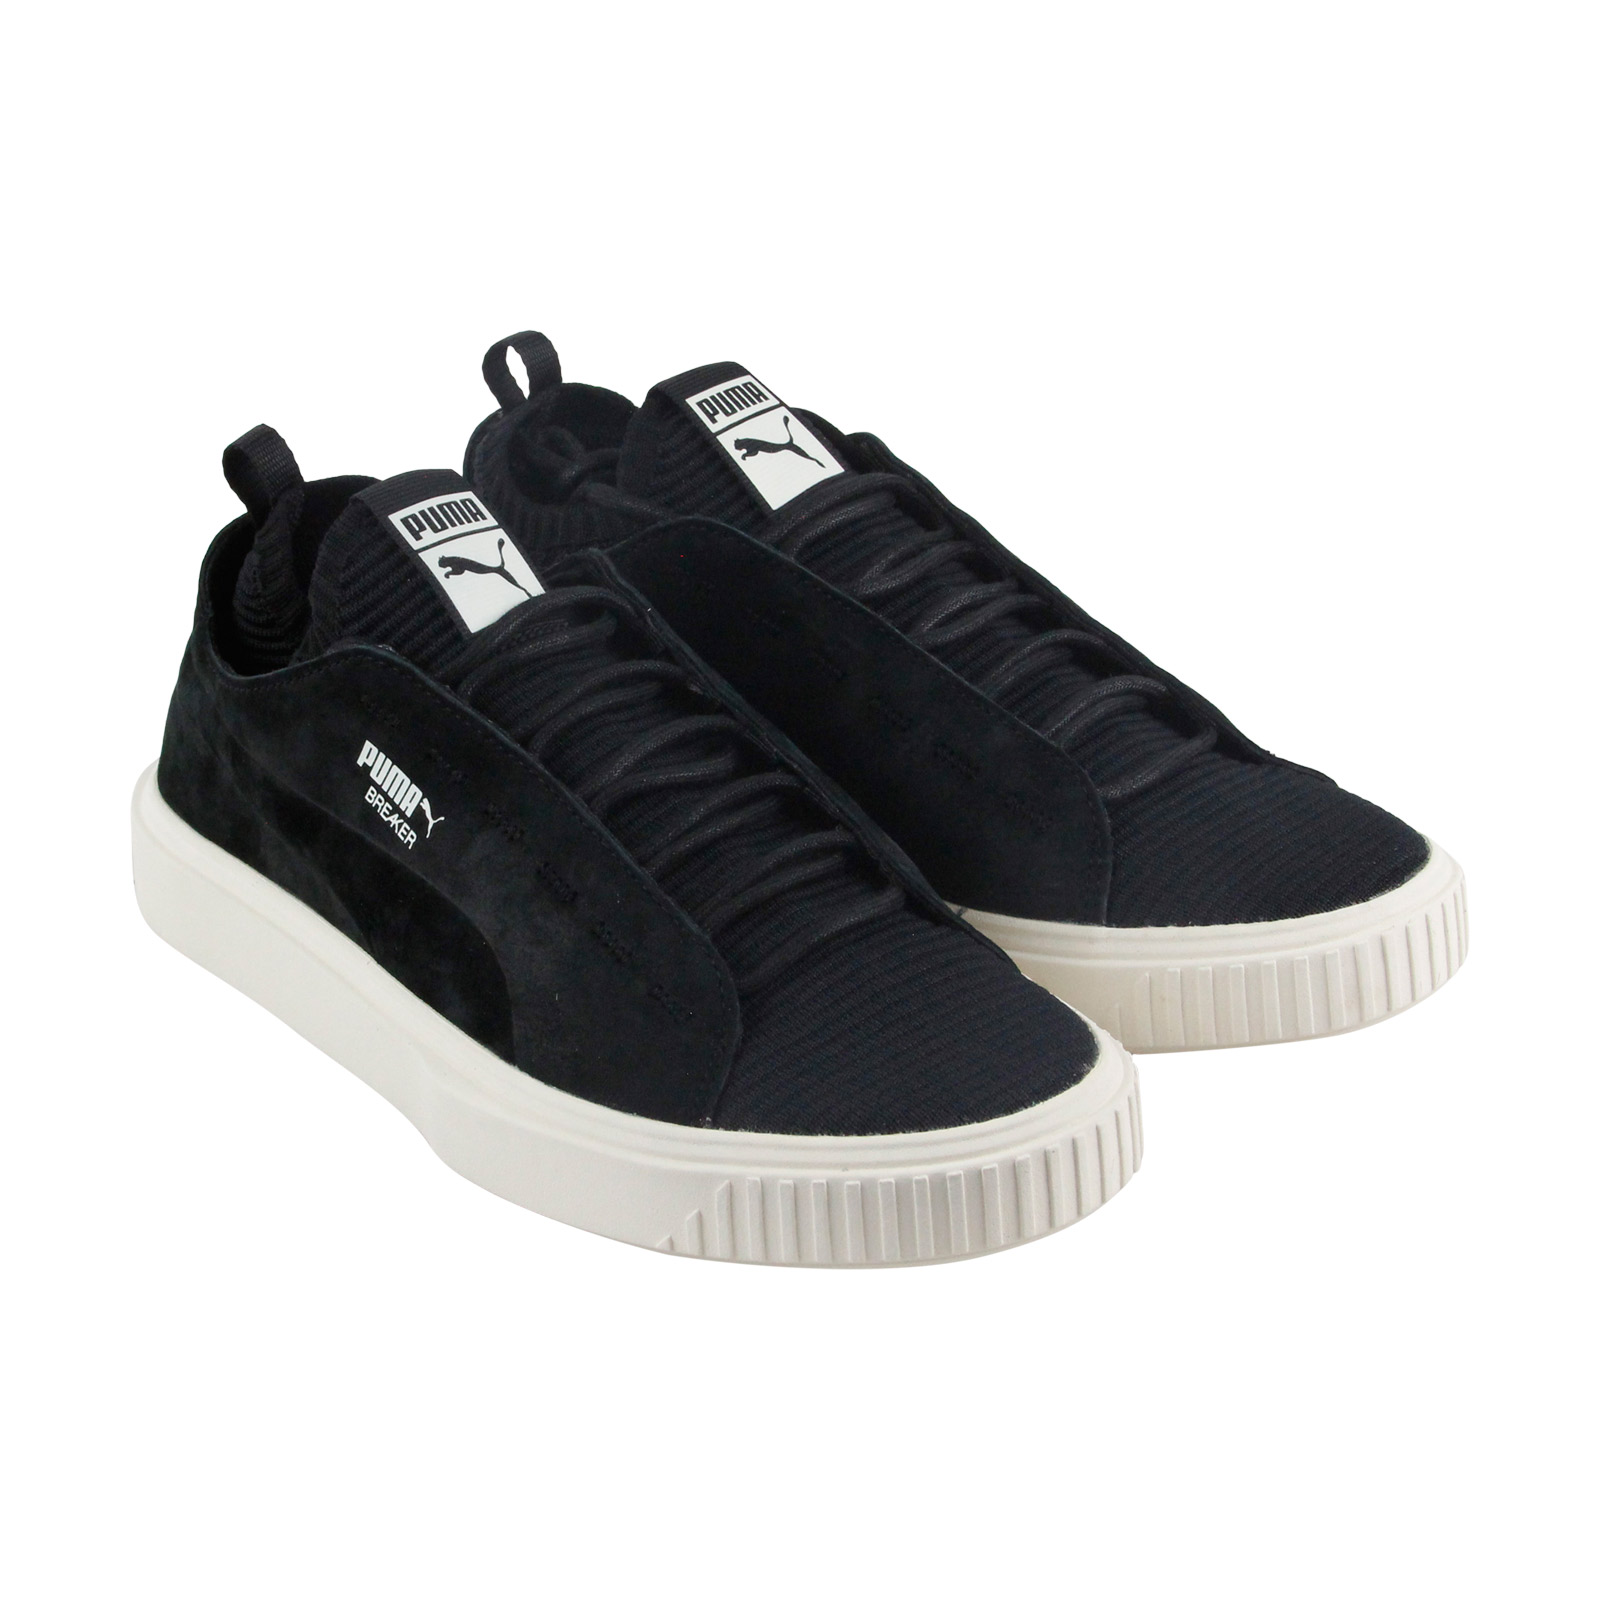 Puma Breaker Suede Knit Sunfaded Mens Black Suede Breaker & Textile Sneakers Shoes 7e2f9c